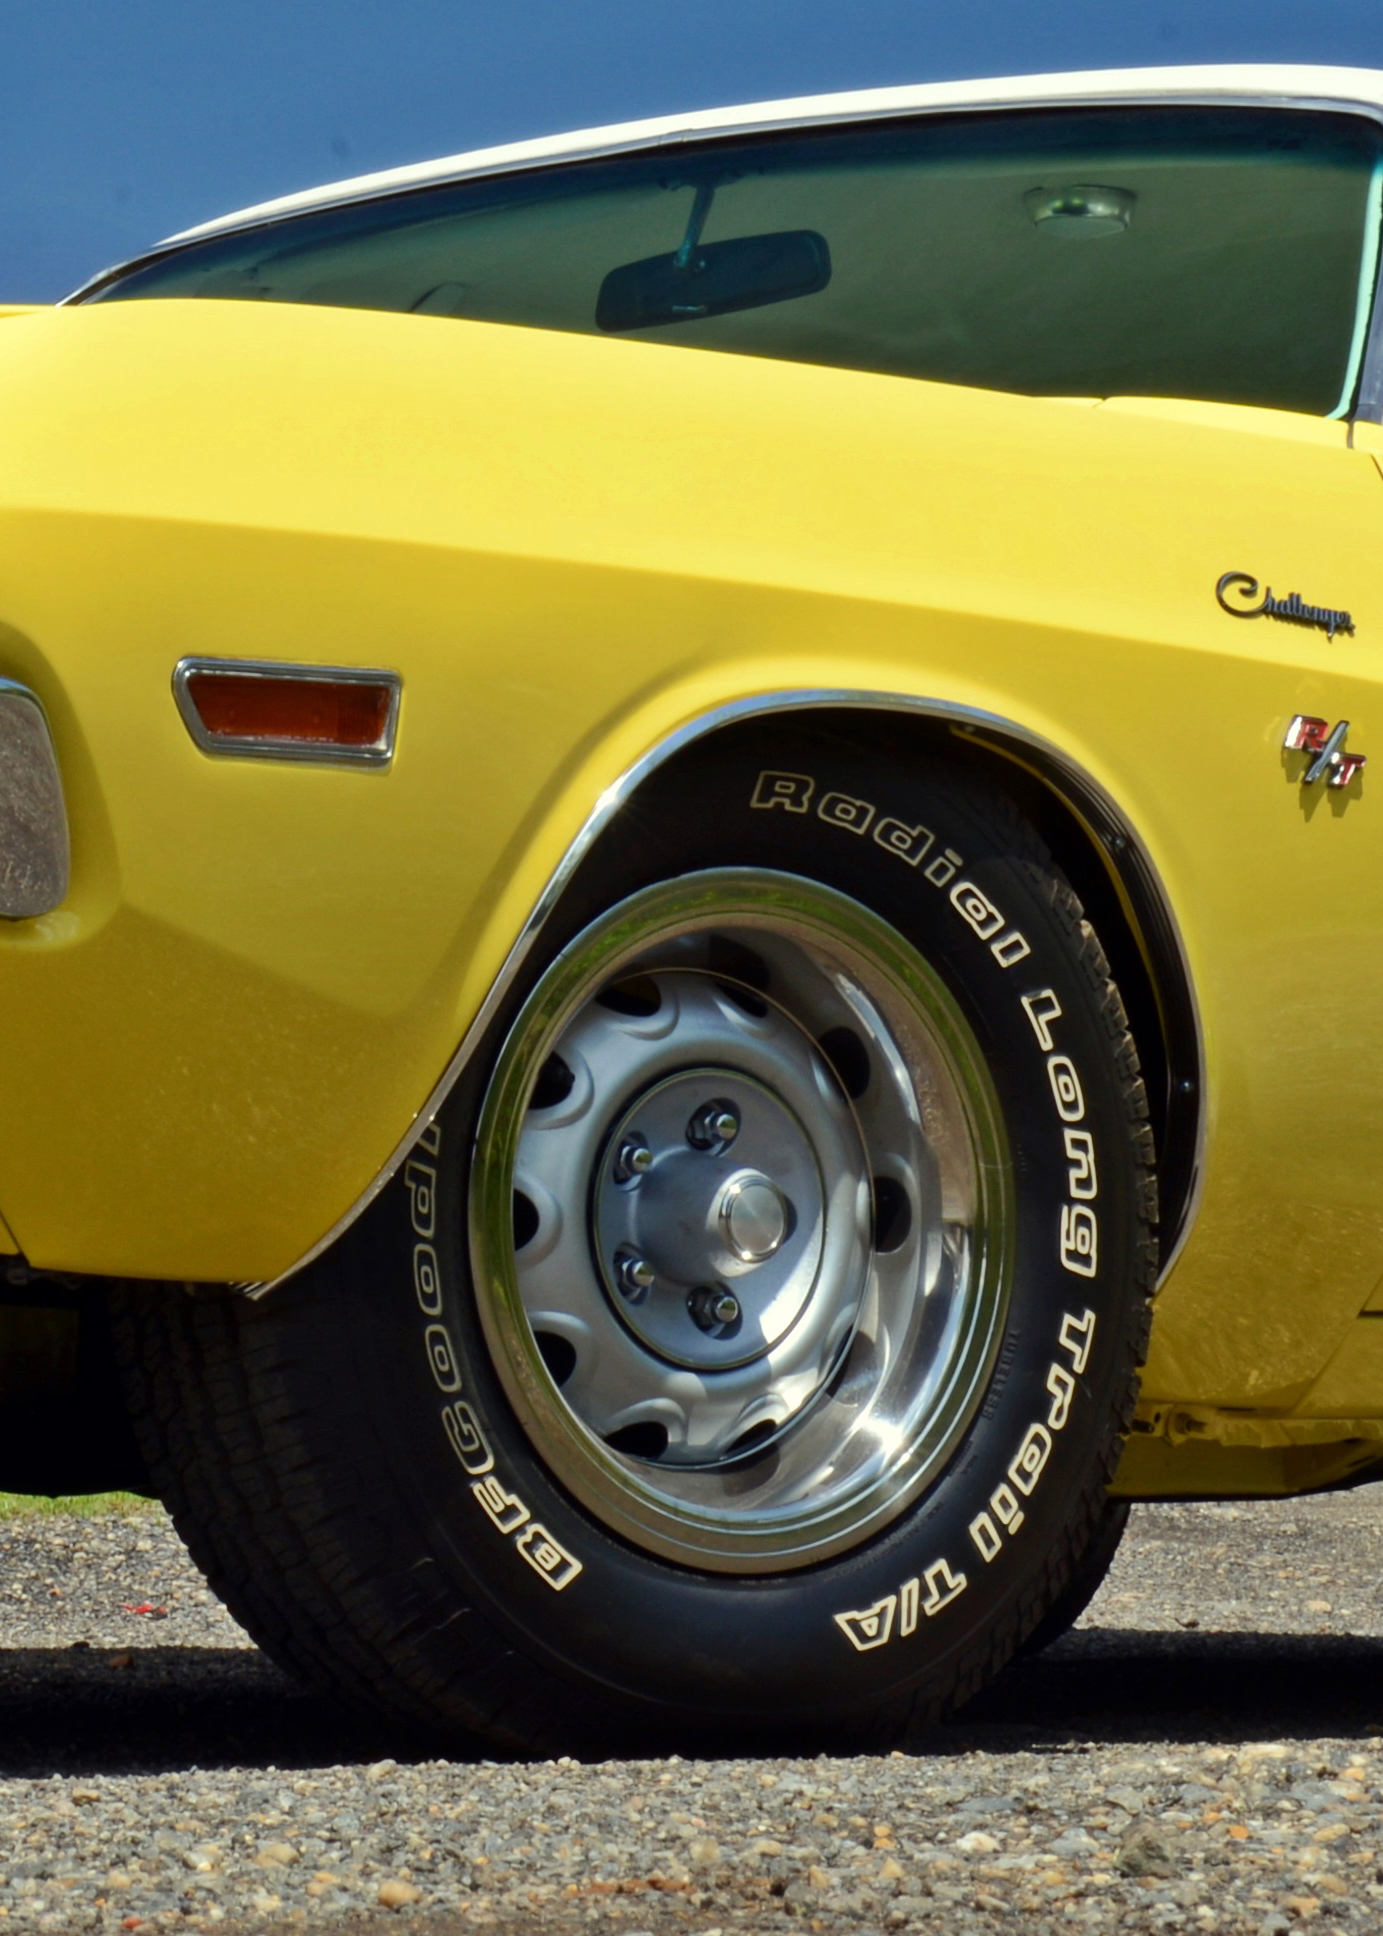 After the restoration, Bill threw on these tires for transporting the Challenger. He still hasn't decided on Goodyear repops or the more basic Goodrich T/As. Interestingly enough, the order card for this particular Challenger shows that black sidewalls were put on the car, but the window sticker tells a different tale. It states that white letter tires were installed.